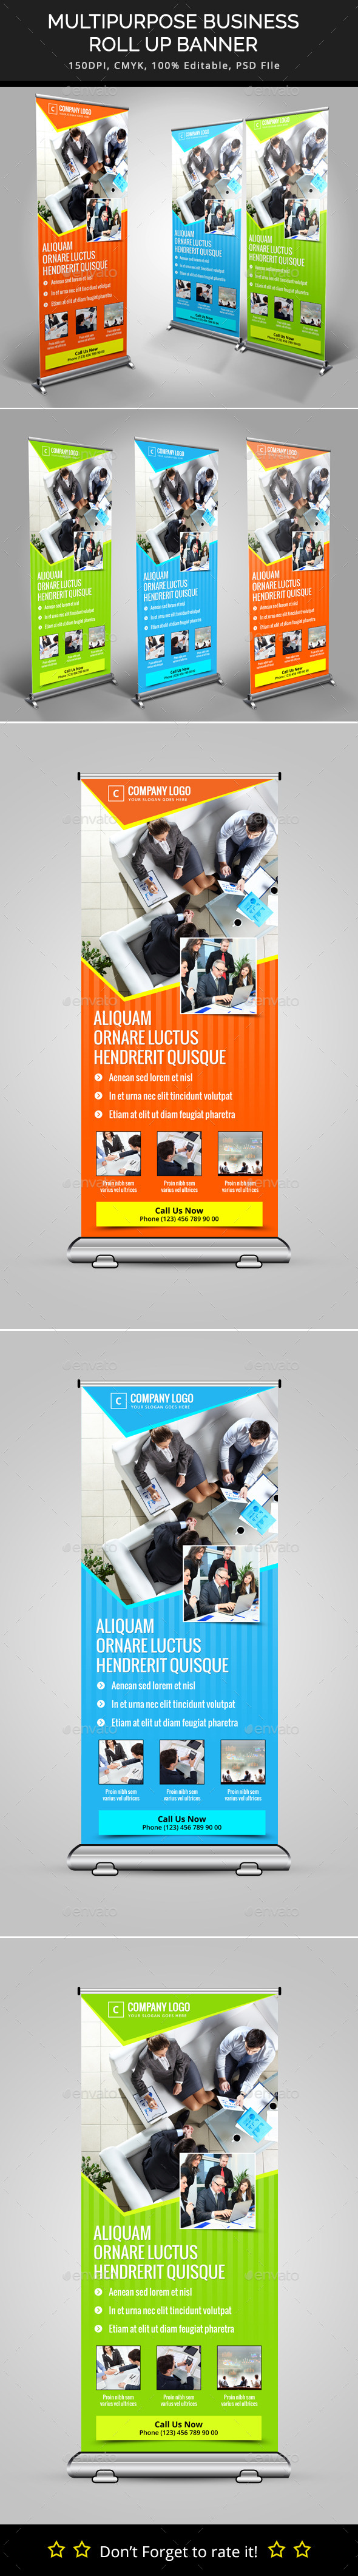 Multipurpose Business Roll Up Banner - Signage Print Templates